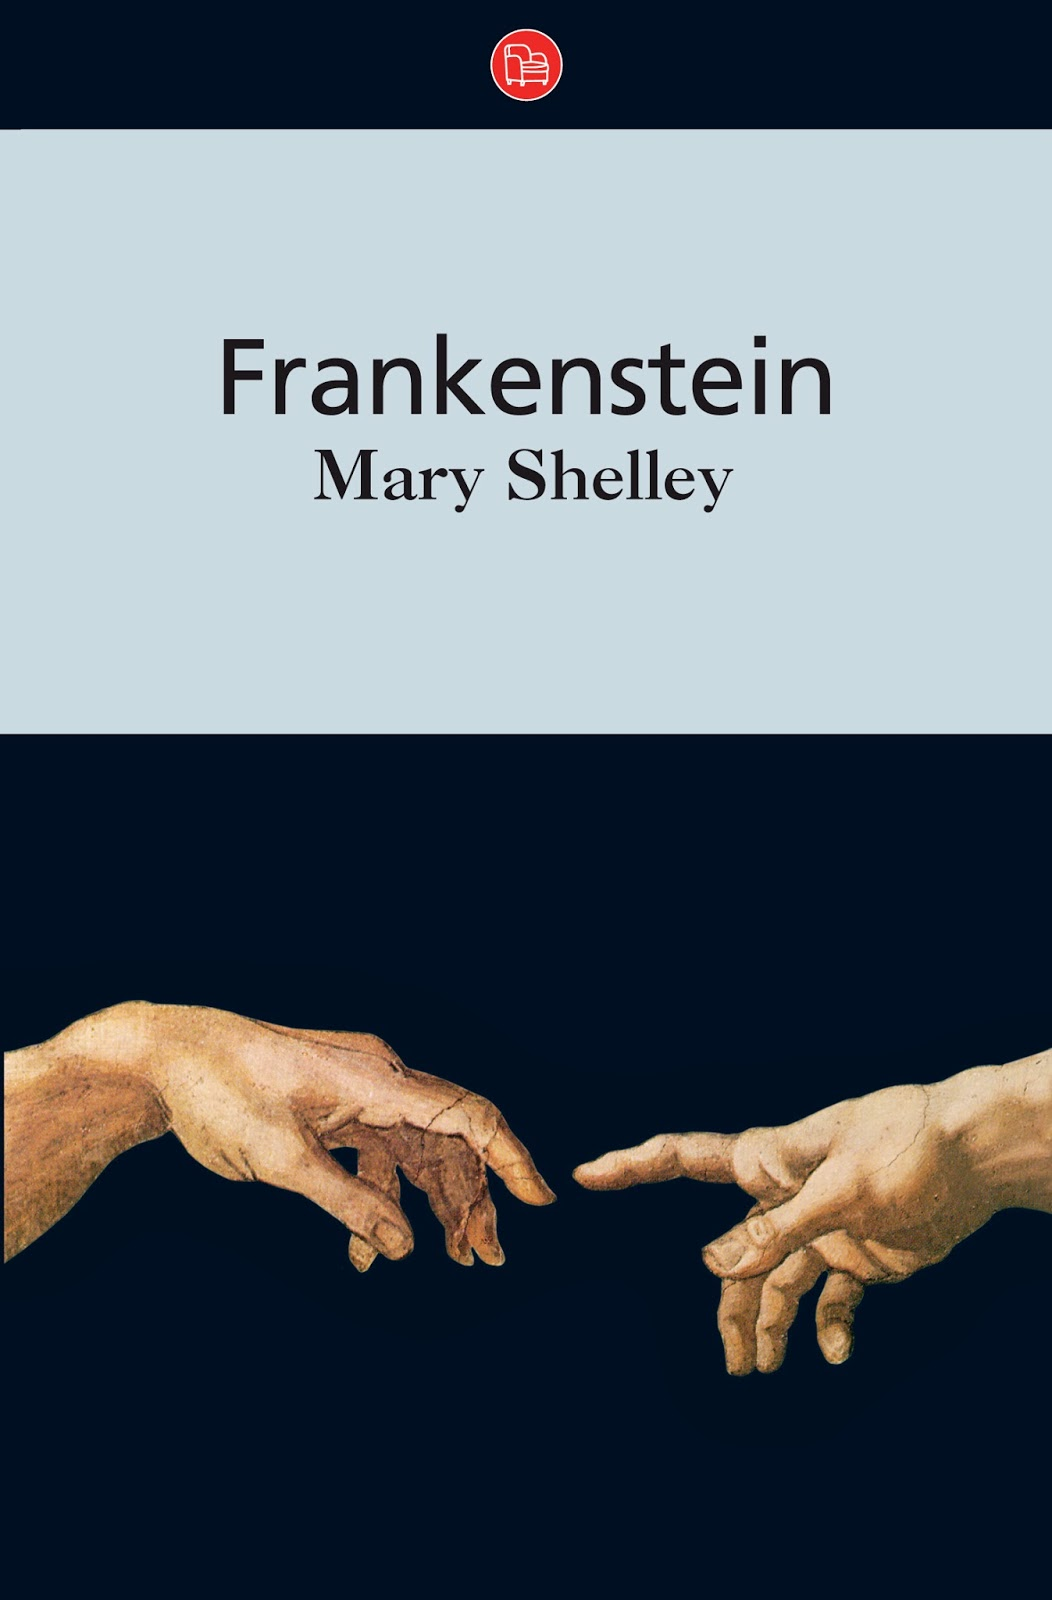 29. Frankentstein de Mary Shelley